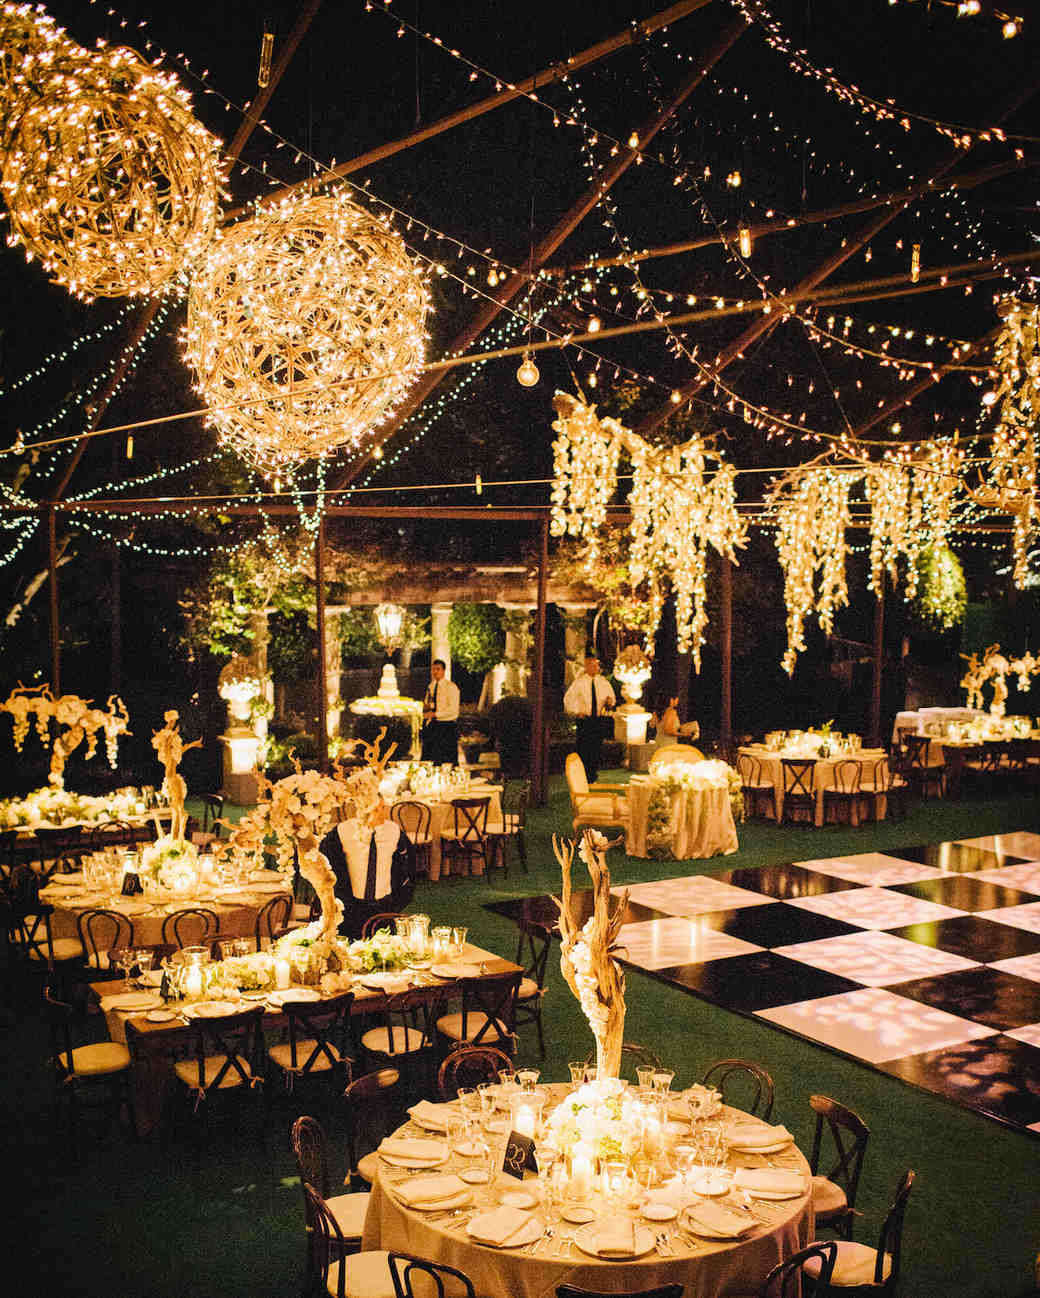 Wedding Home Decoration Outdoor Wedding Lighting Ideas From Real Celebrations